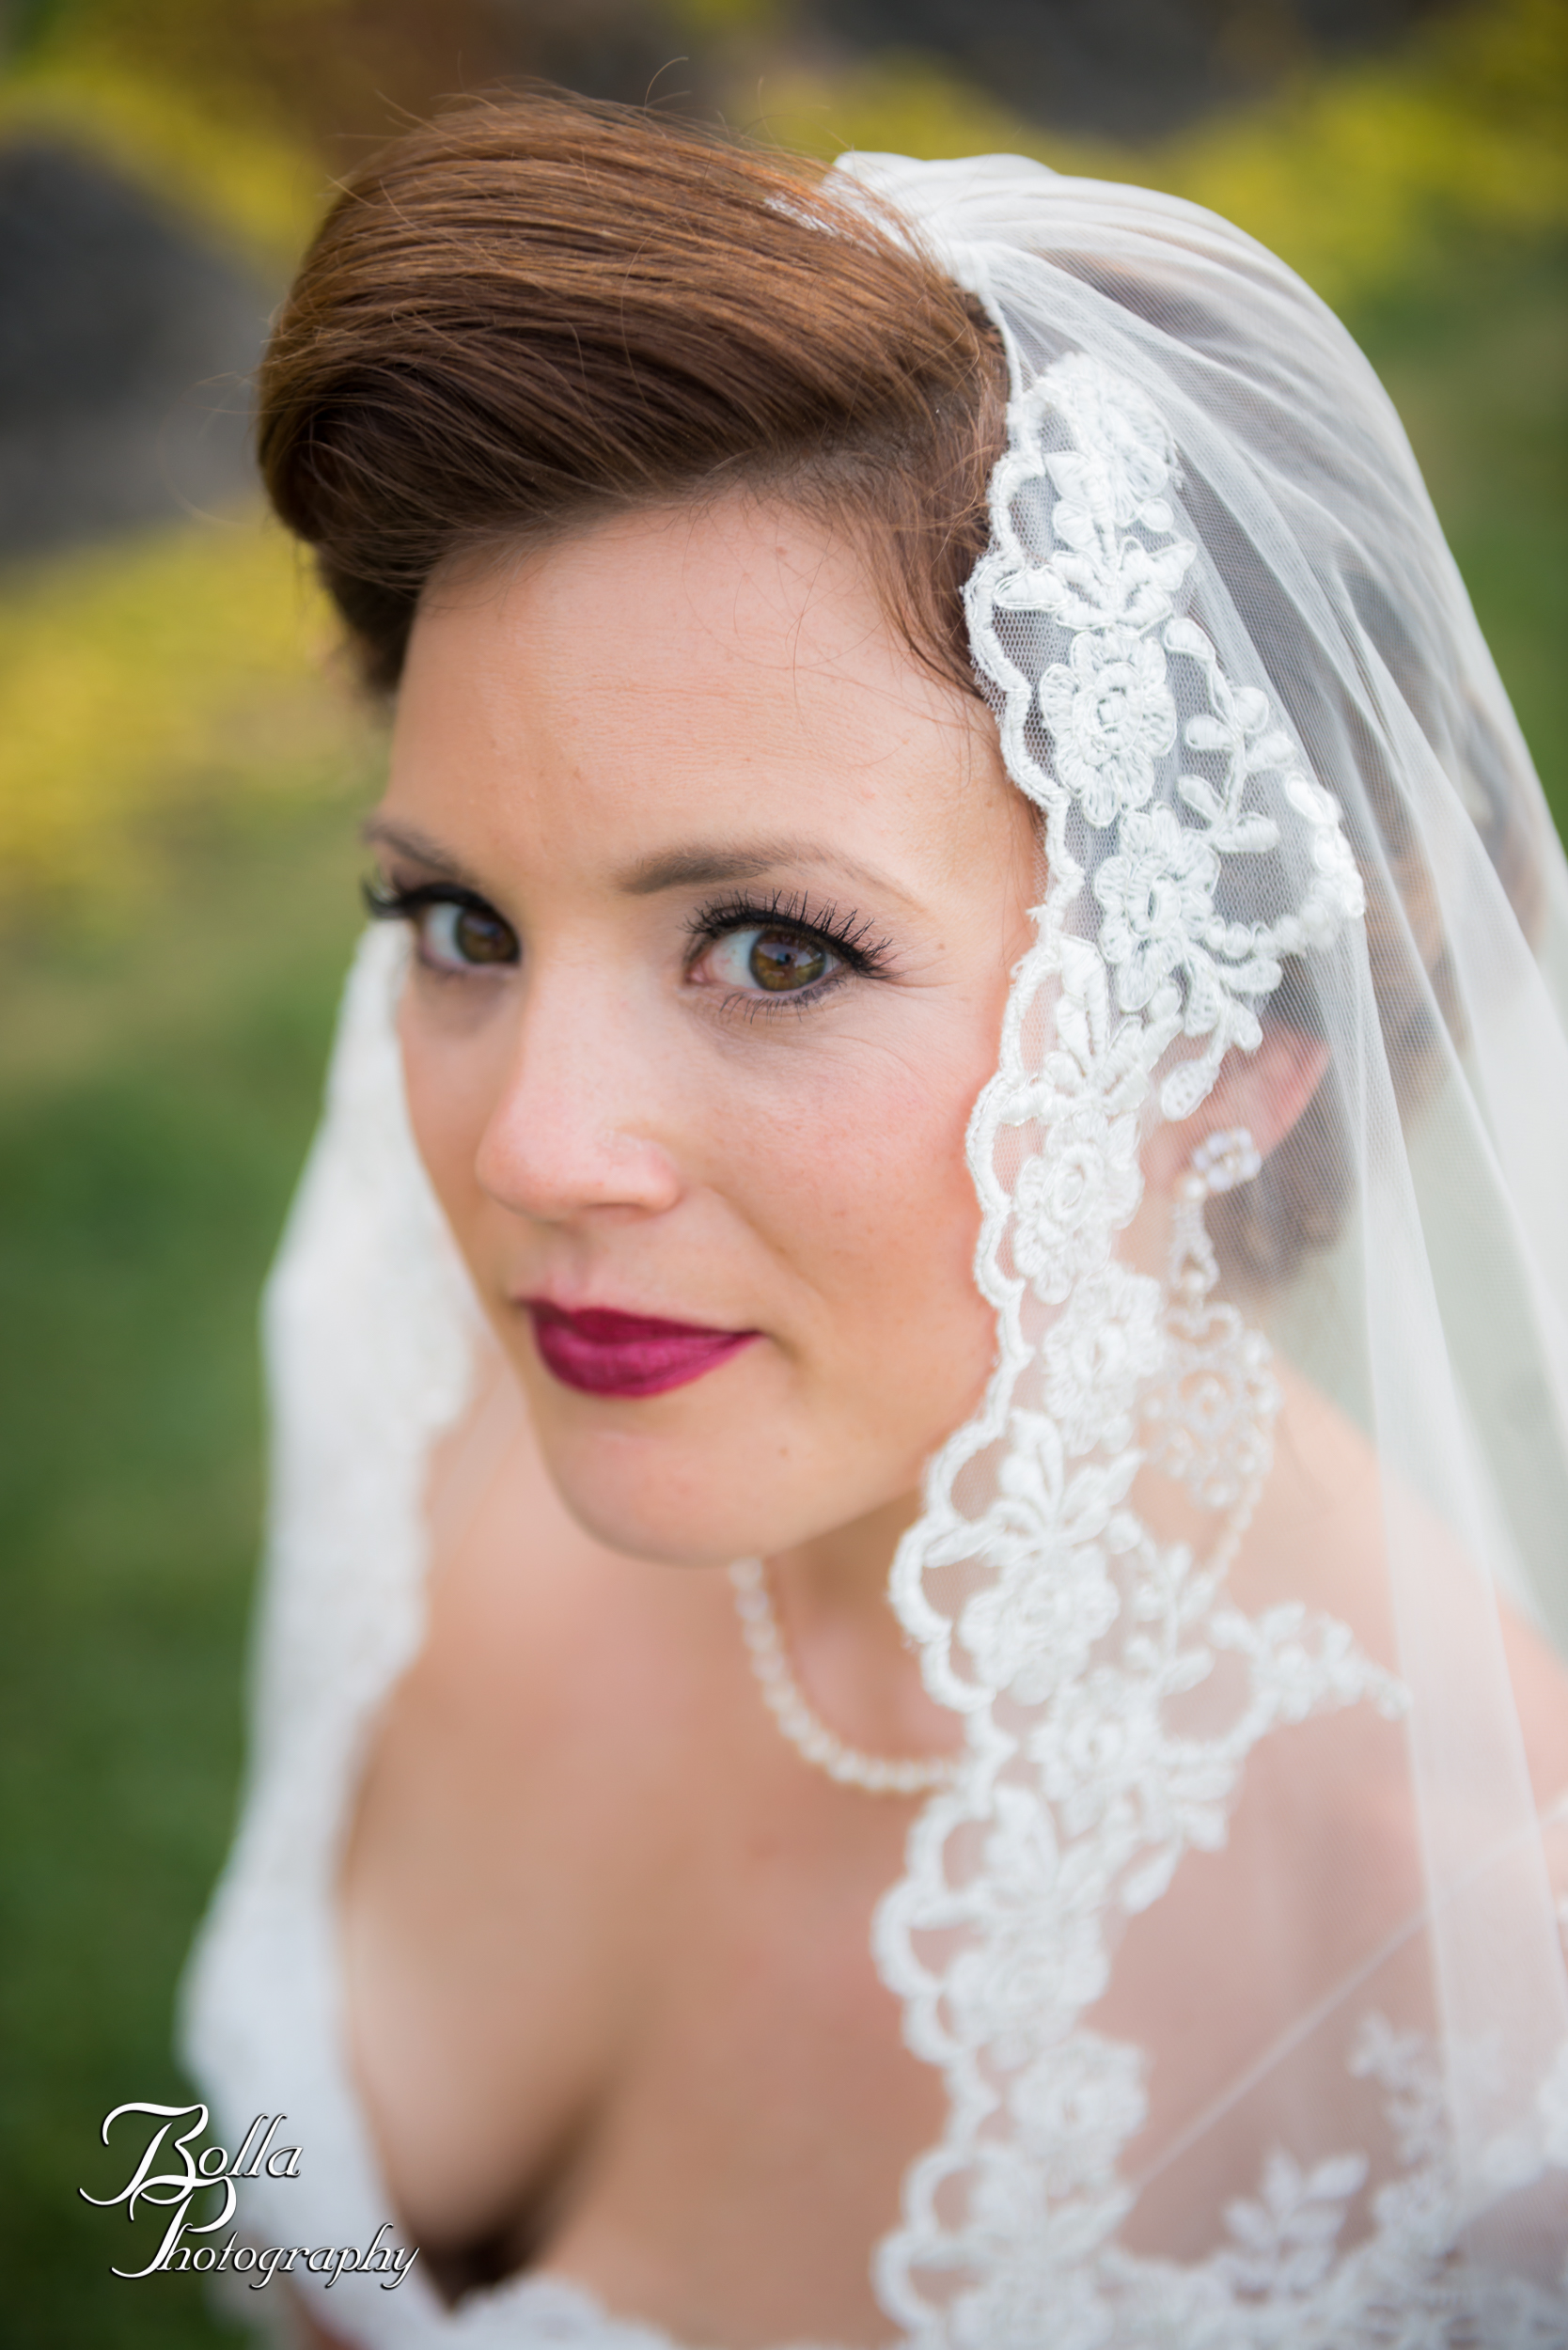 Bolla_photography_edwardsville_wedding_photographer_st_louis_weddings_Chaumette_winery_Mikusch-0444.jpg